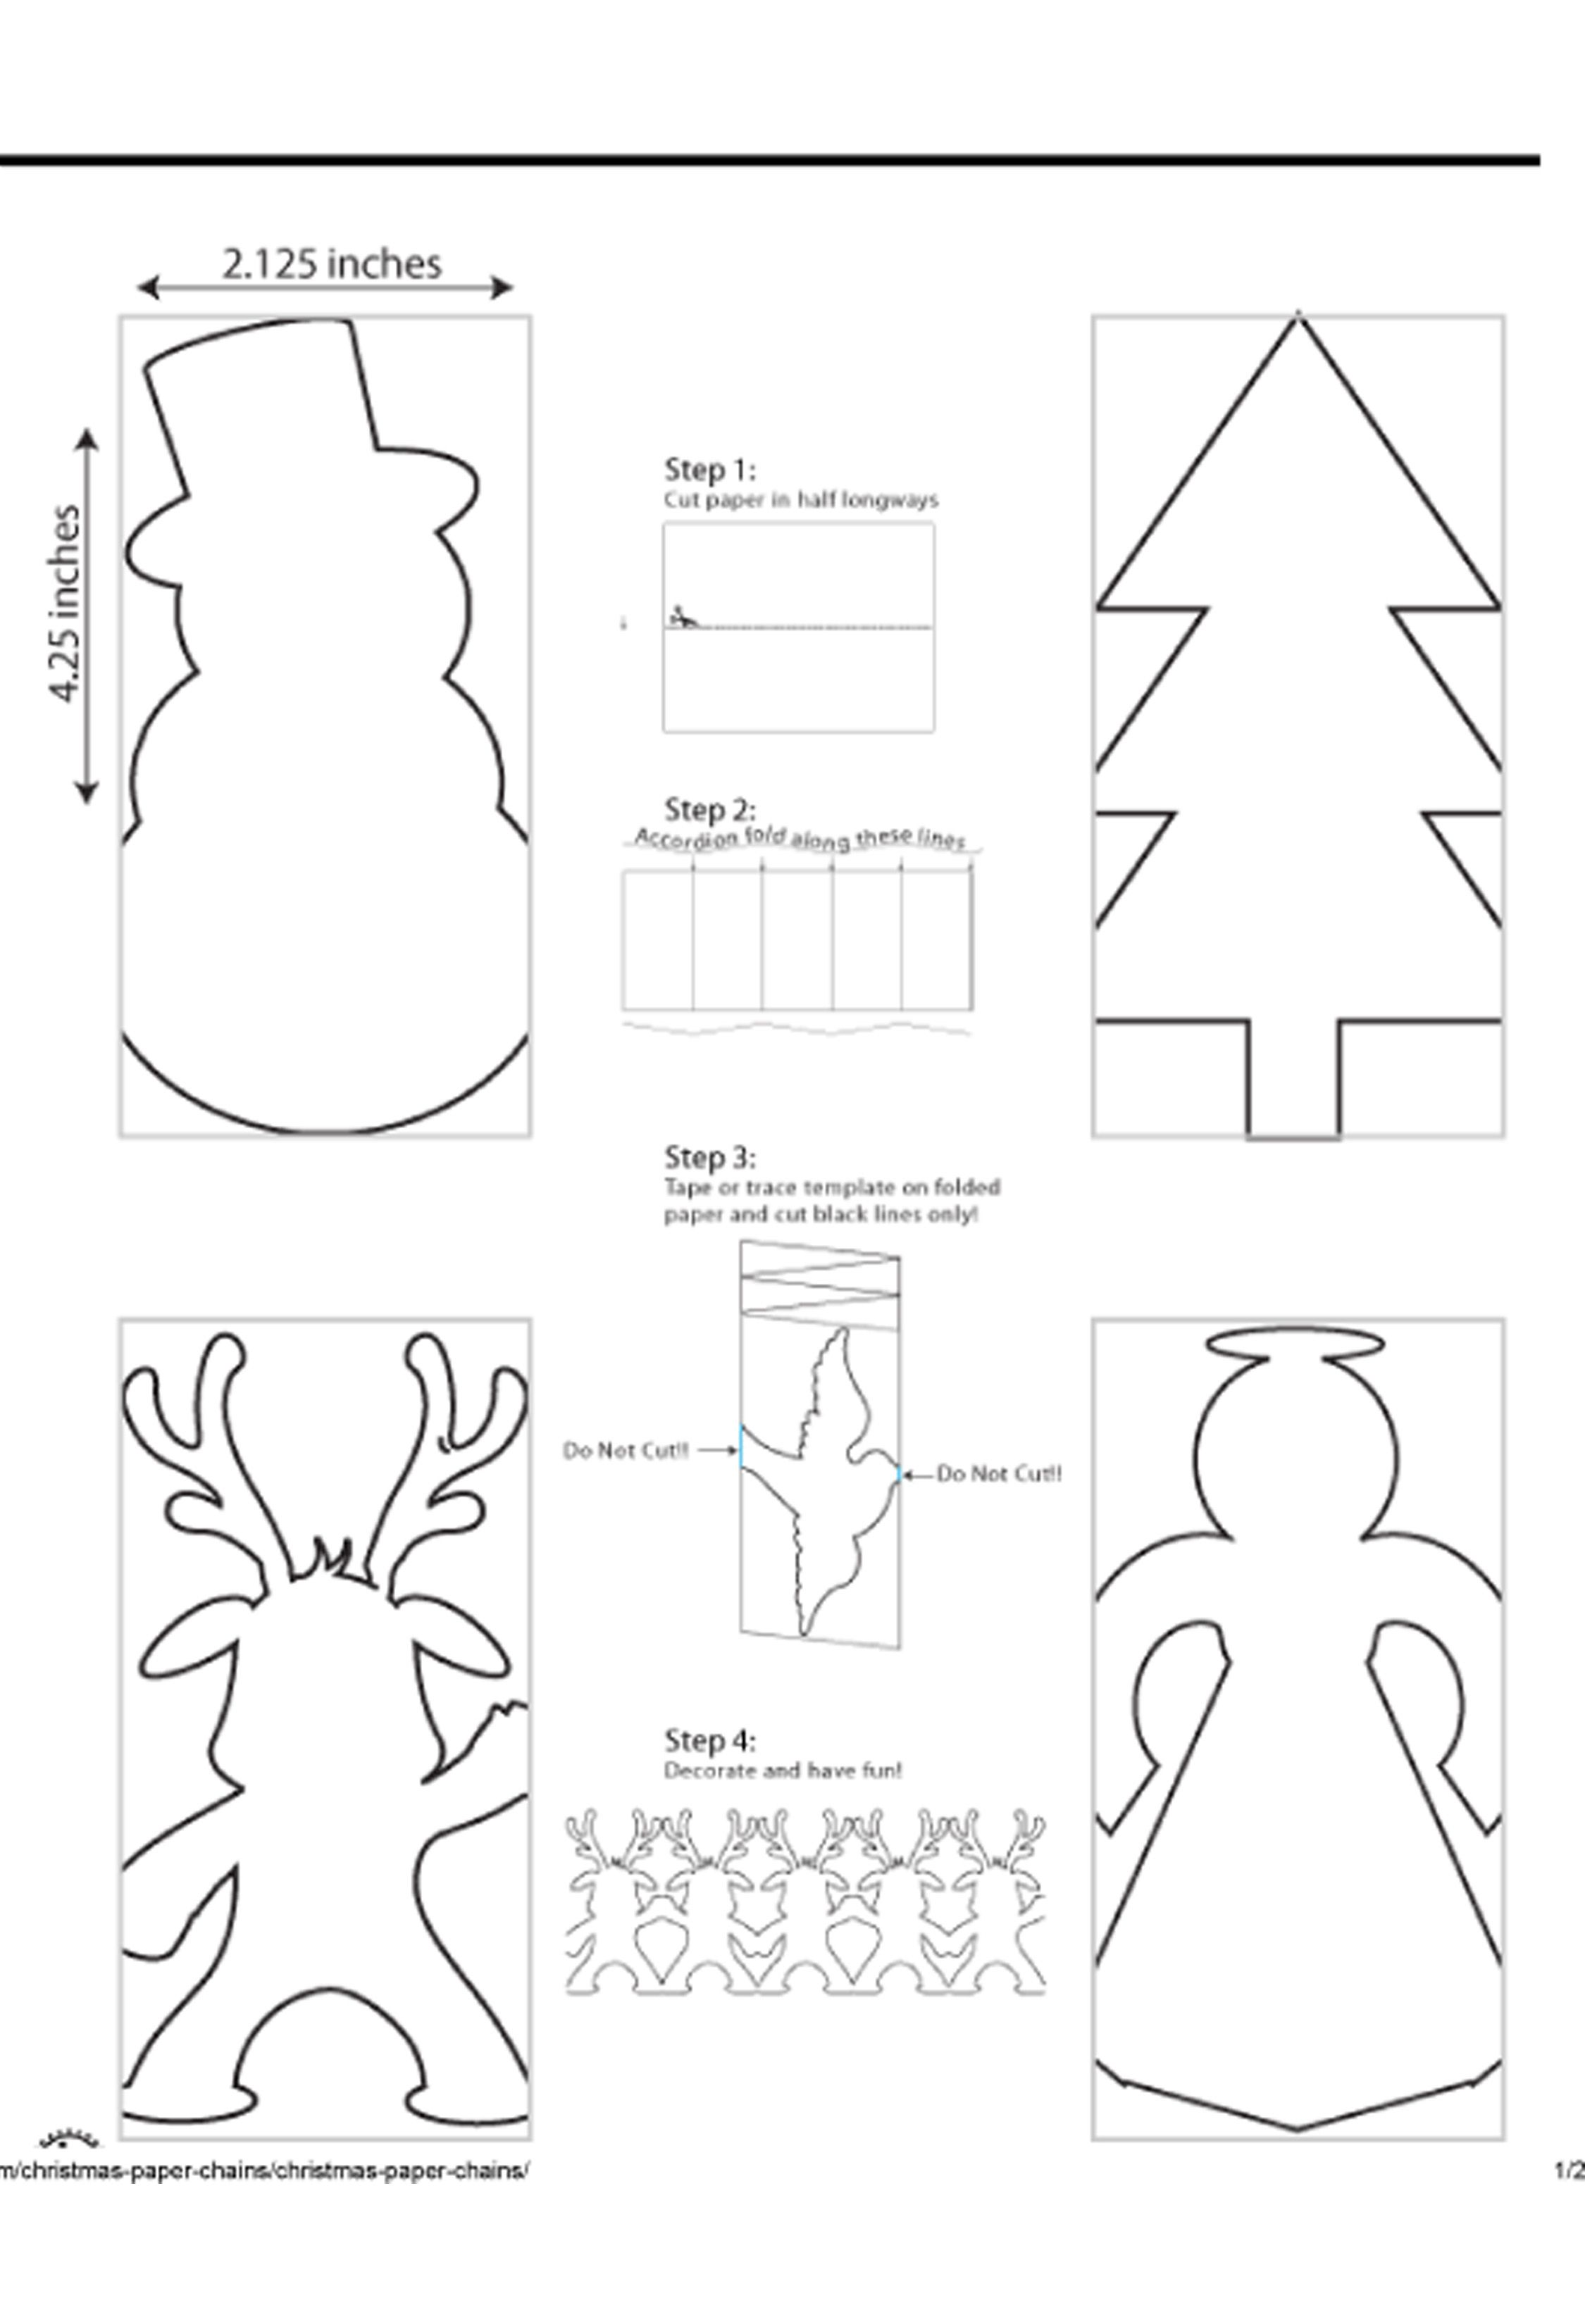 Old Fashioned Christmas Paper Chains Chain Template Craft Jr